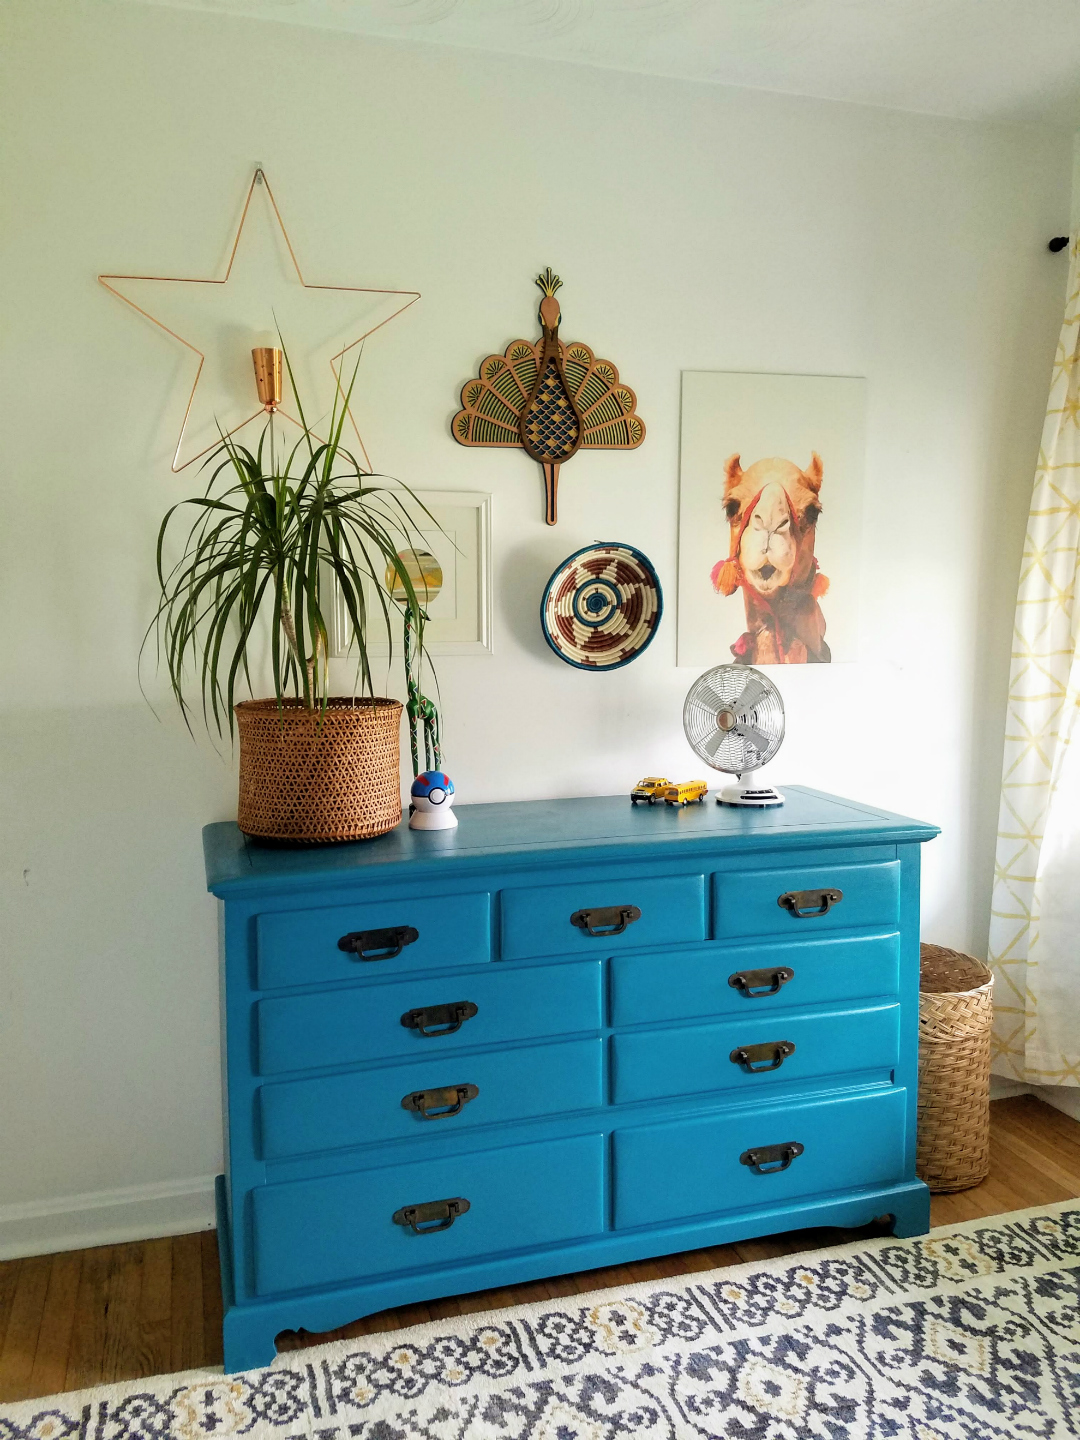 Pin This Ideas! Easy Projects For Big Impact Design - Paint A Bright Teal Dresser TheBohoAbode Project